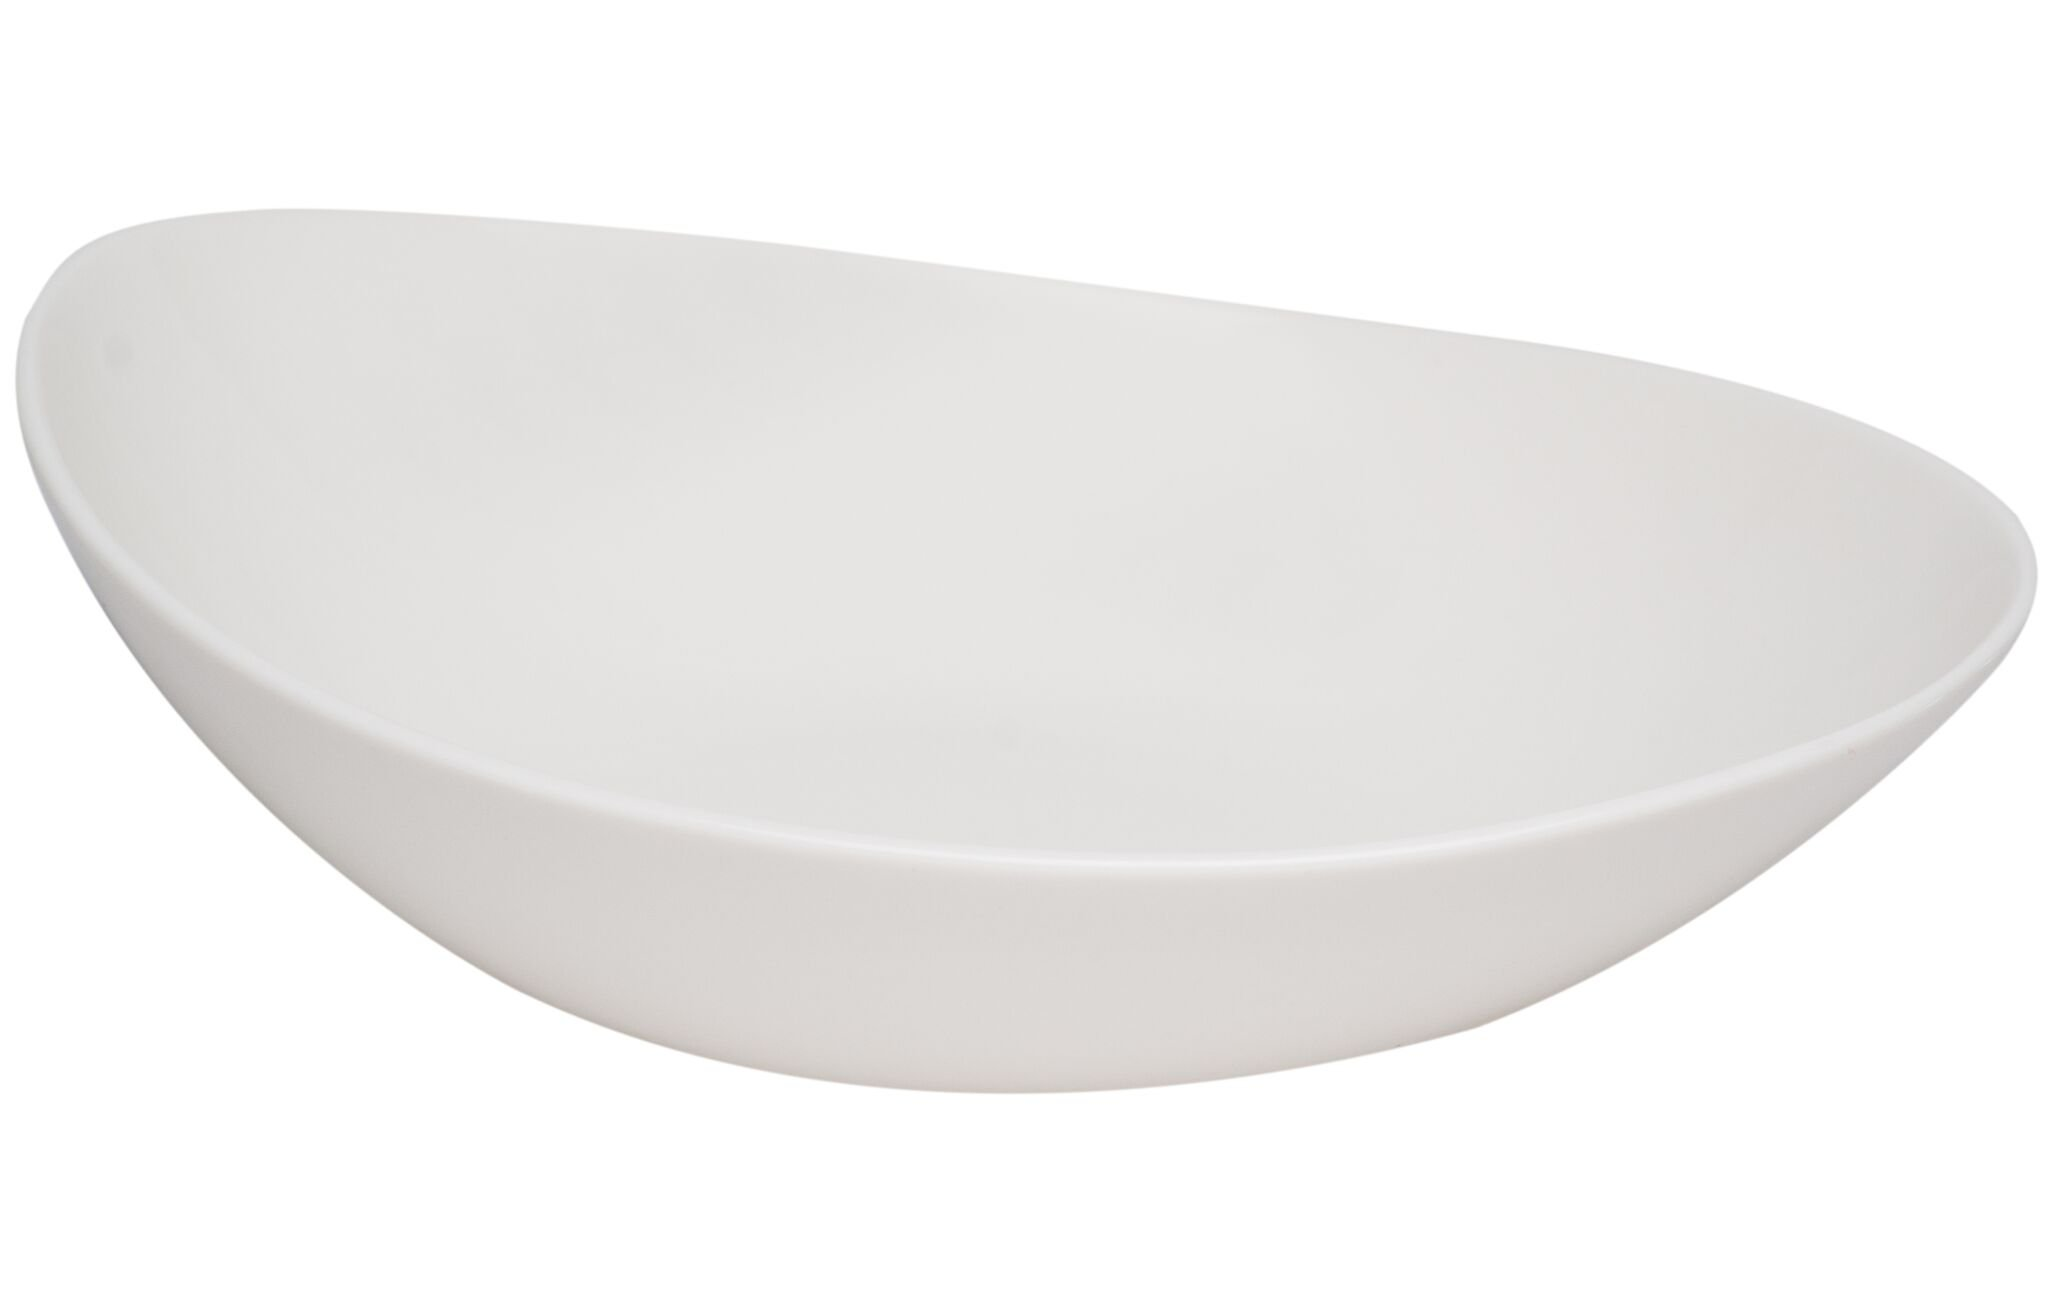 Red Vanilla Whisper Coupe Pasta Bowl, Set of 6, 9'', White by Red Vanilla (Image #1)